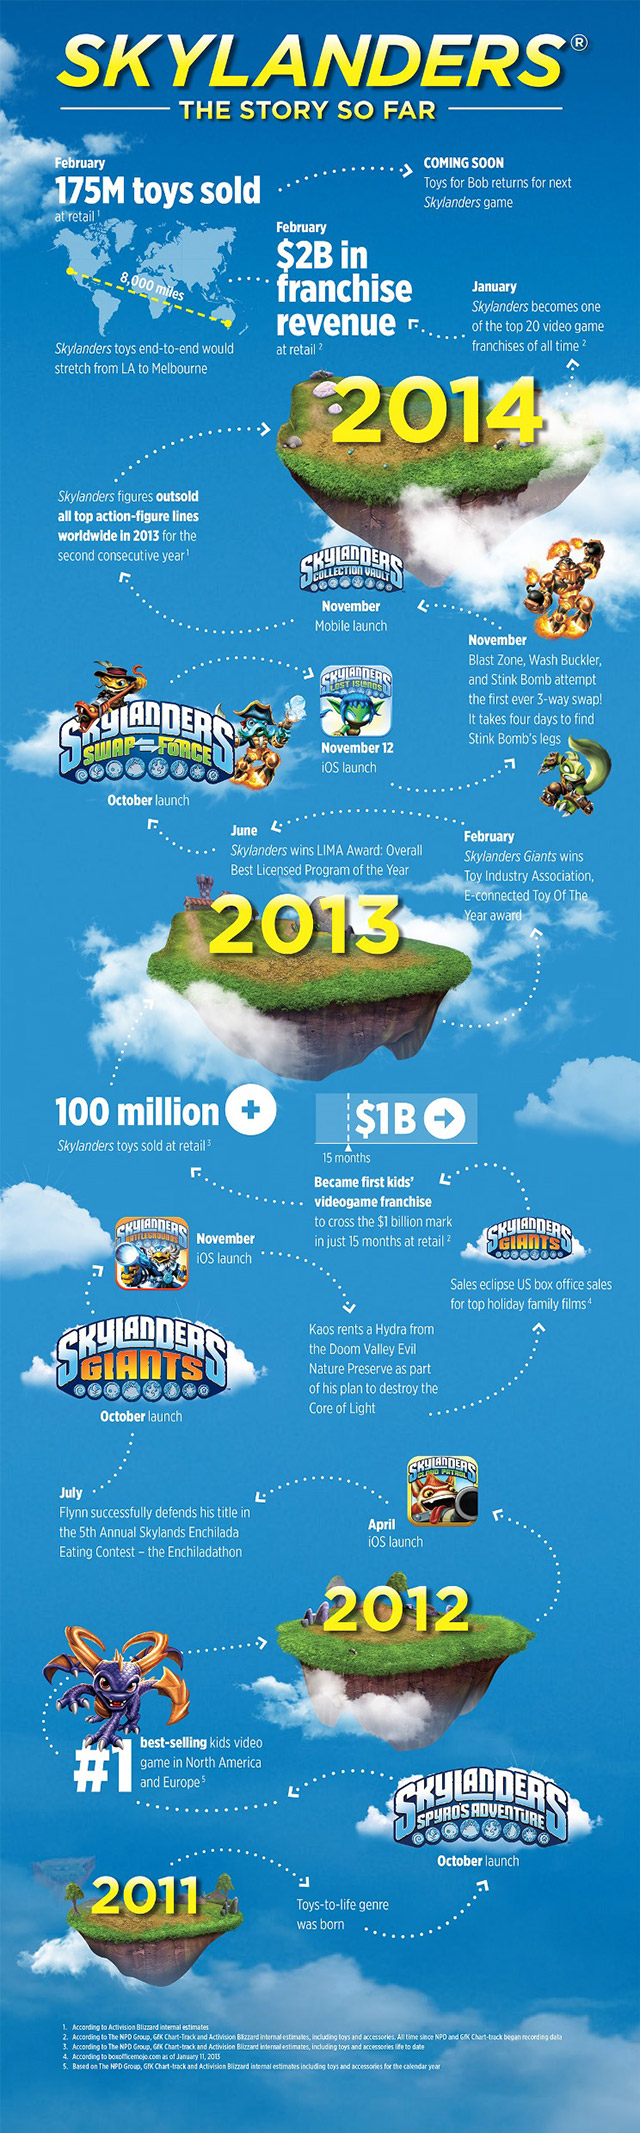 1_Skylanders_Franchise_Infographic_Final_MedRes